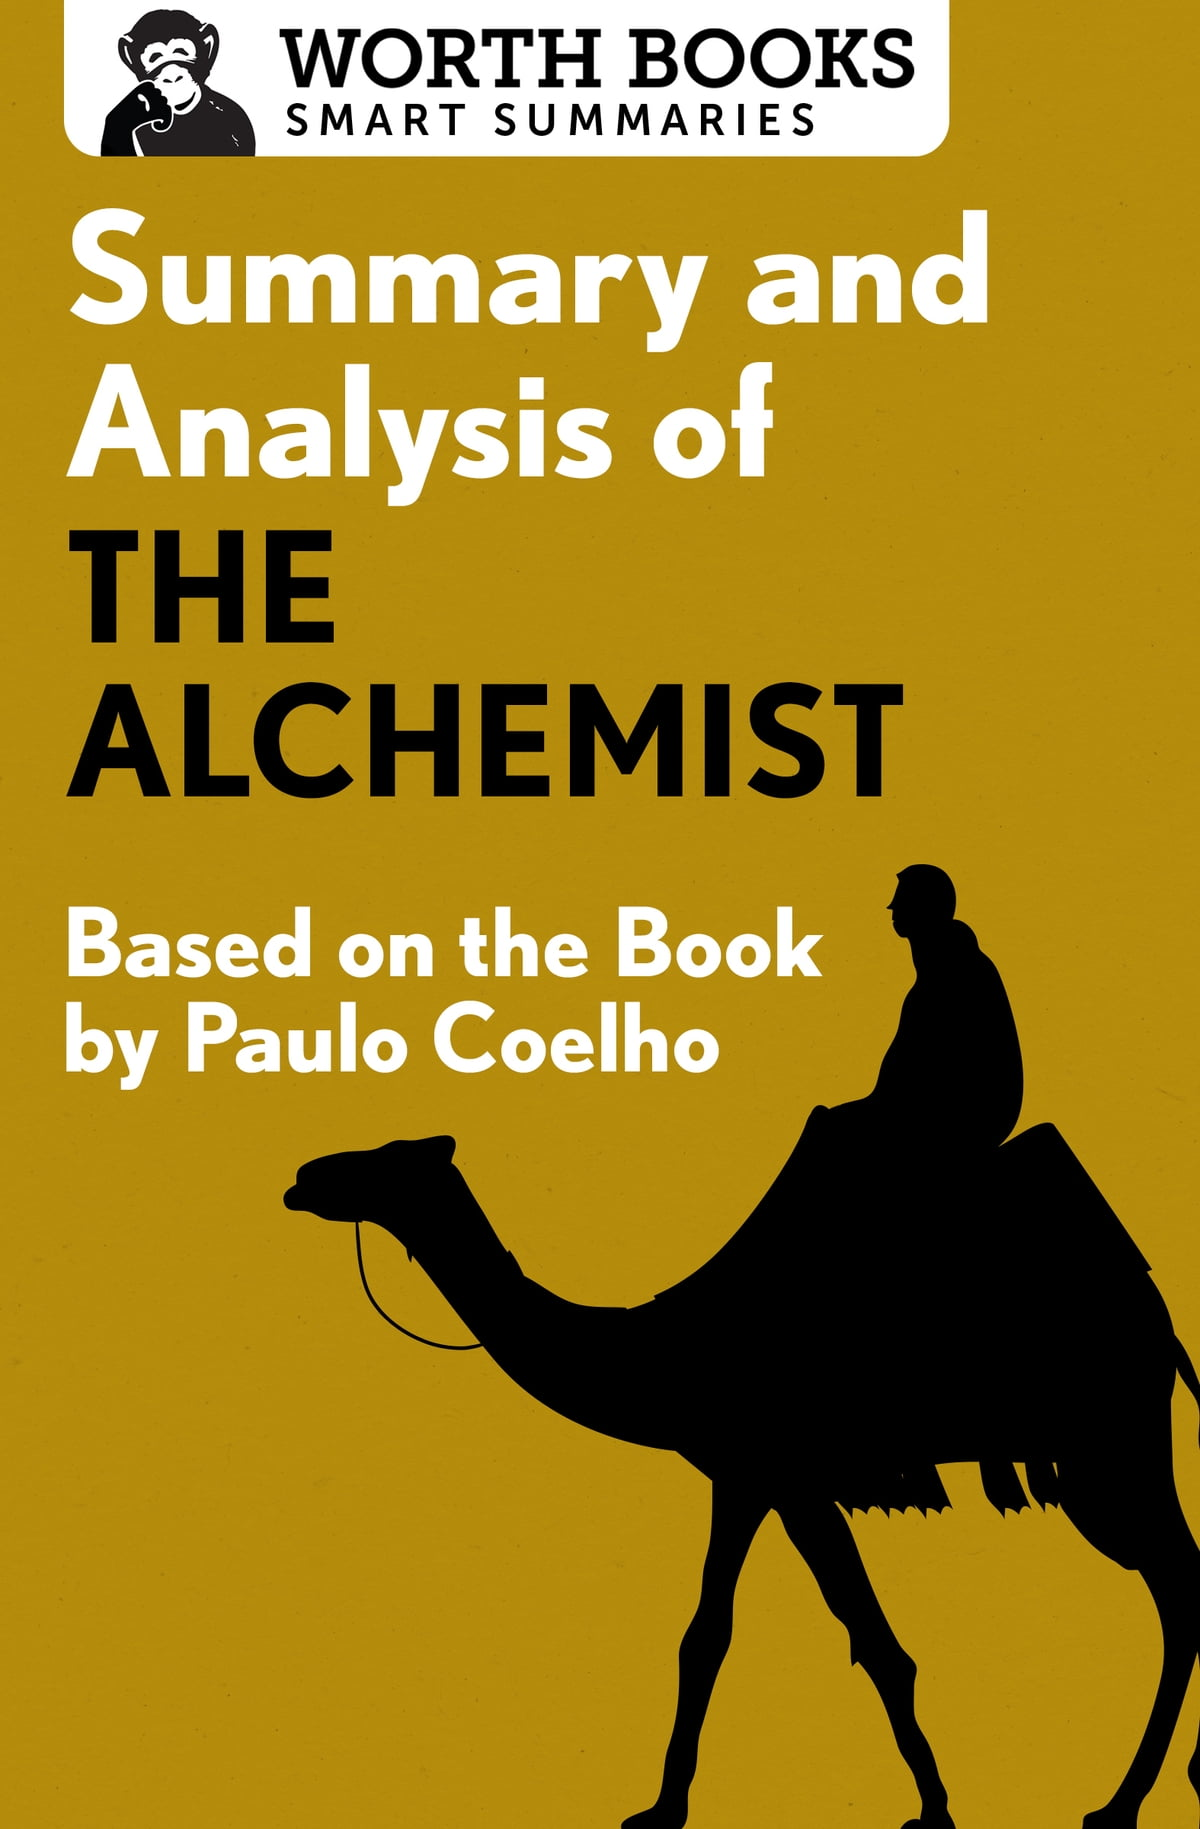 summary and analysis of the alchemist ebook by worth books summary and analysis of the alchemist ebook by worth books 9781504043359 rakuten kobo